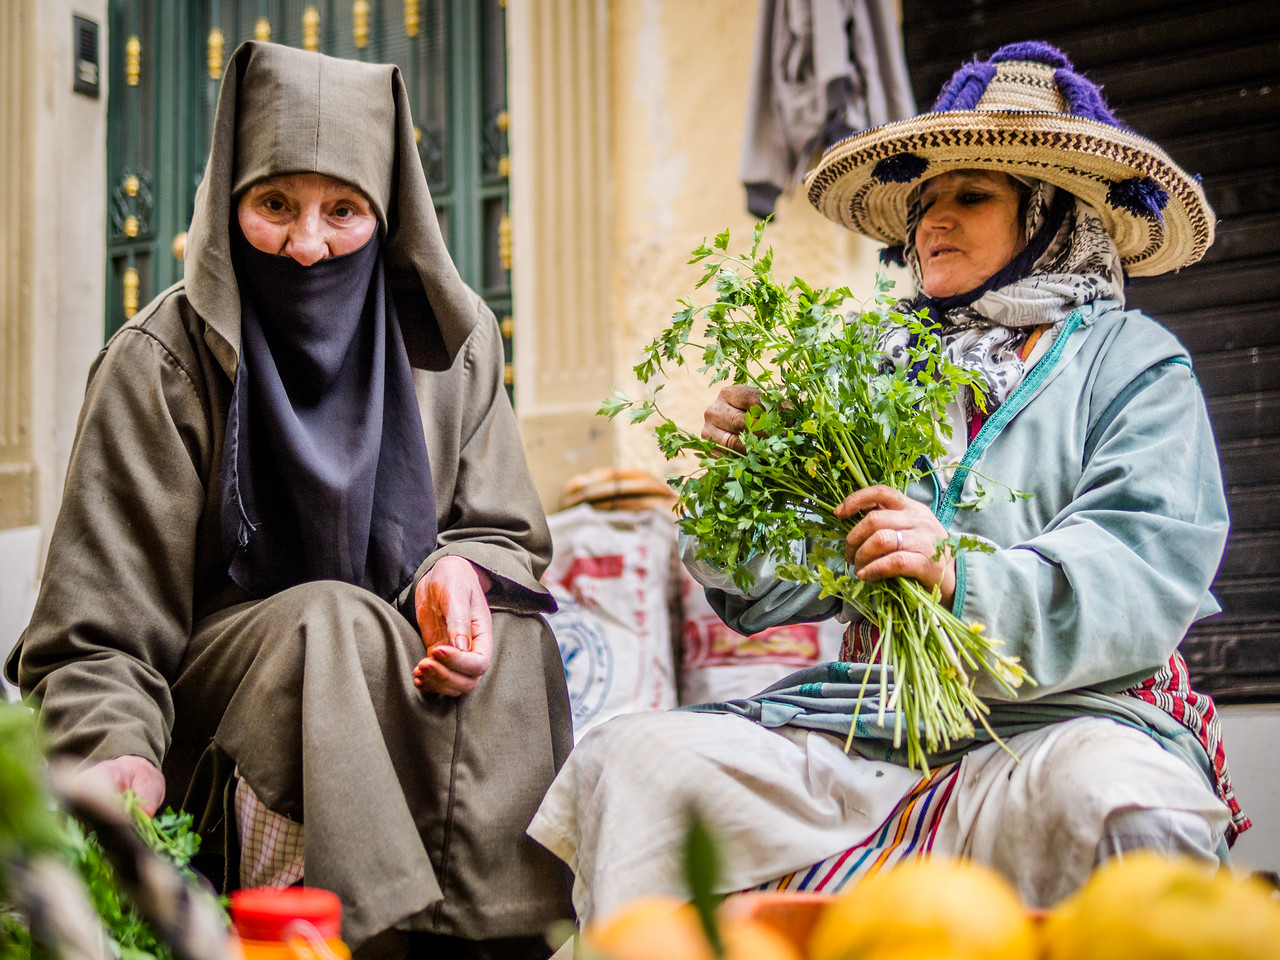 Parsely on the Market, Tangiers, Morocco